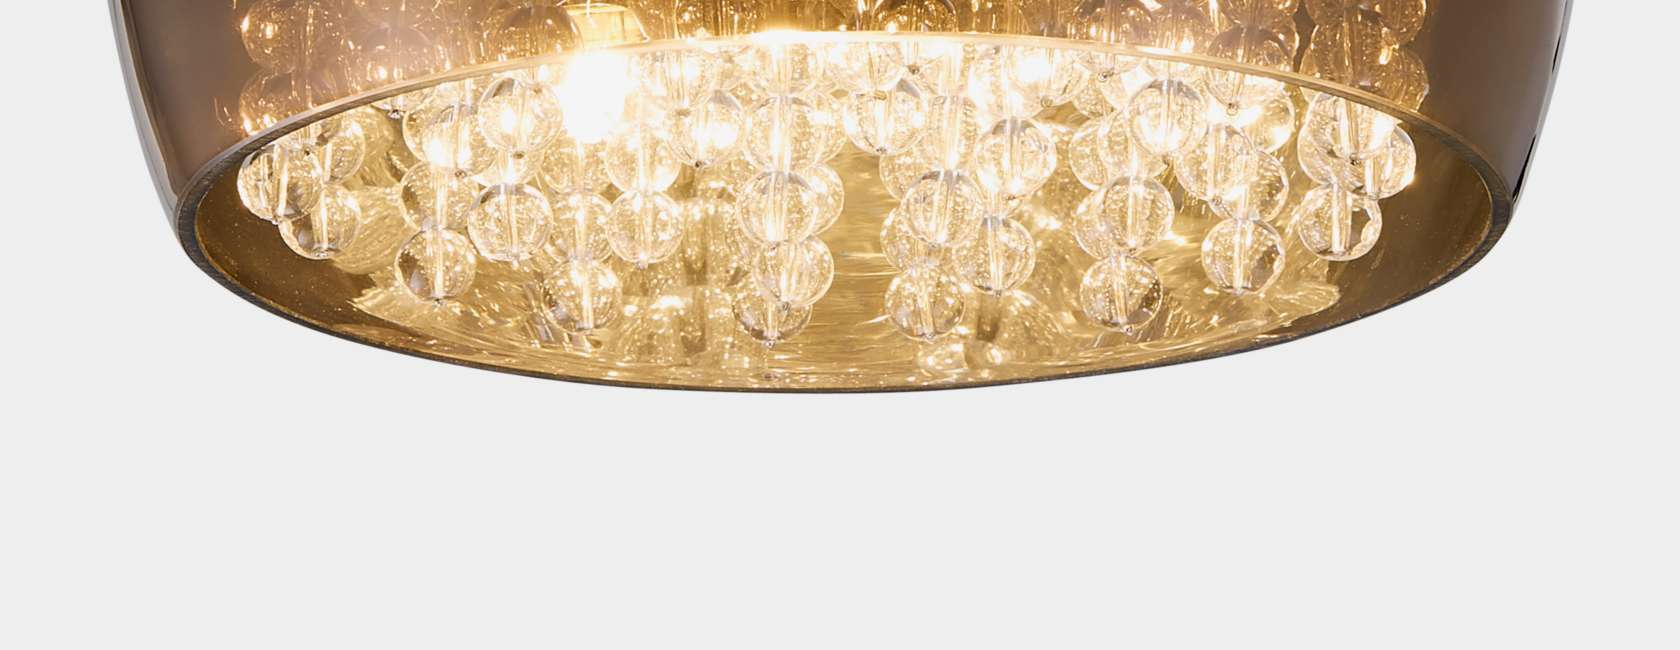 9596a921e01 John Lewis   Partners Stella Lighting Collection at John Lewis ...